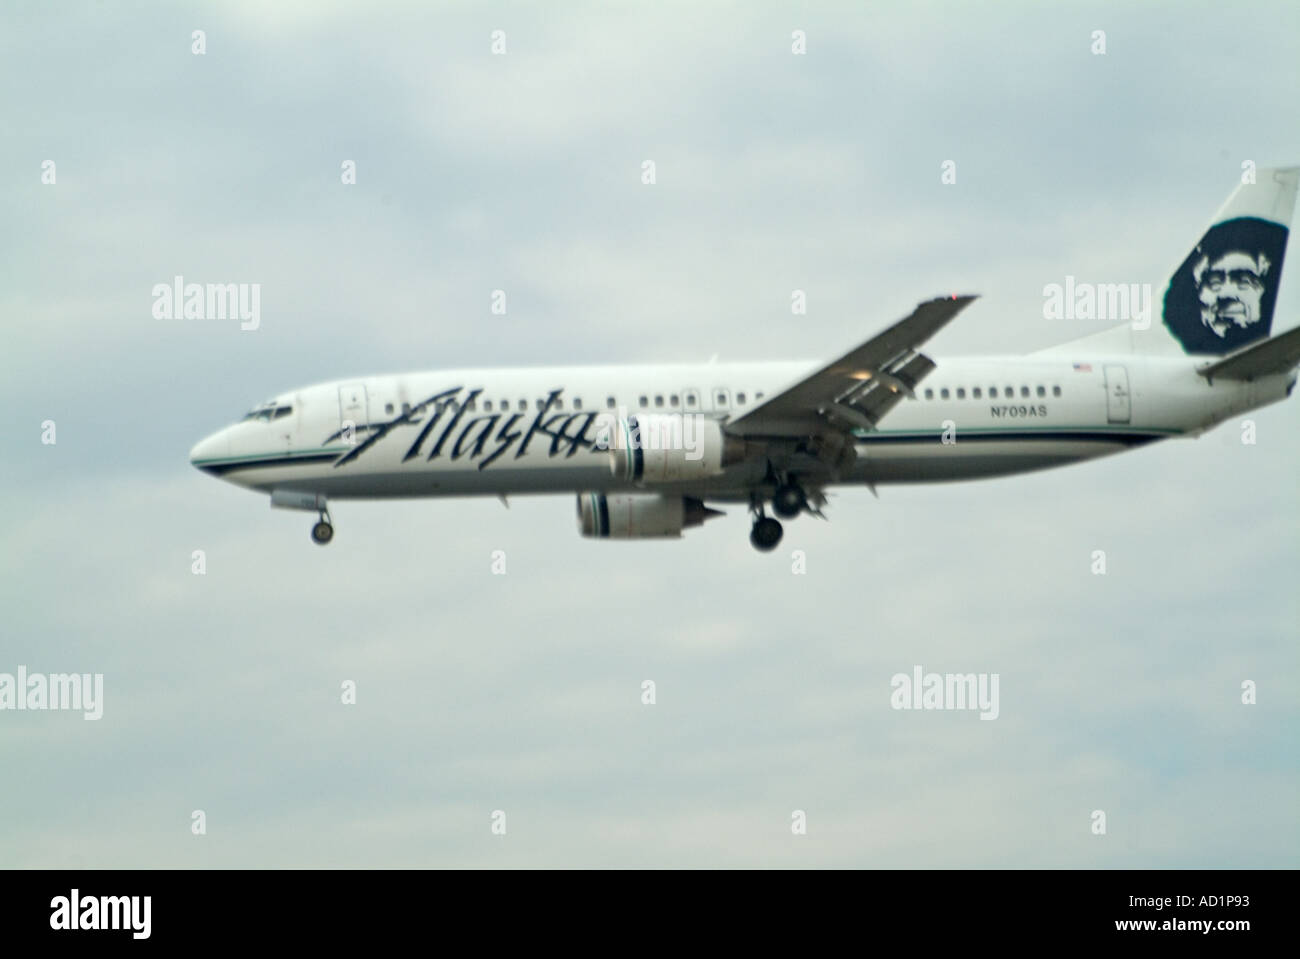 Alaska airlines Airplane landing wheels down low altitude on approach to LAX - Stock Image